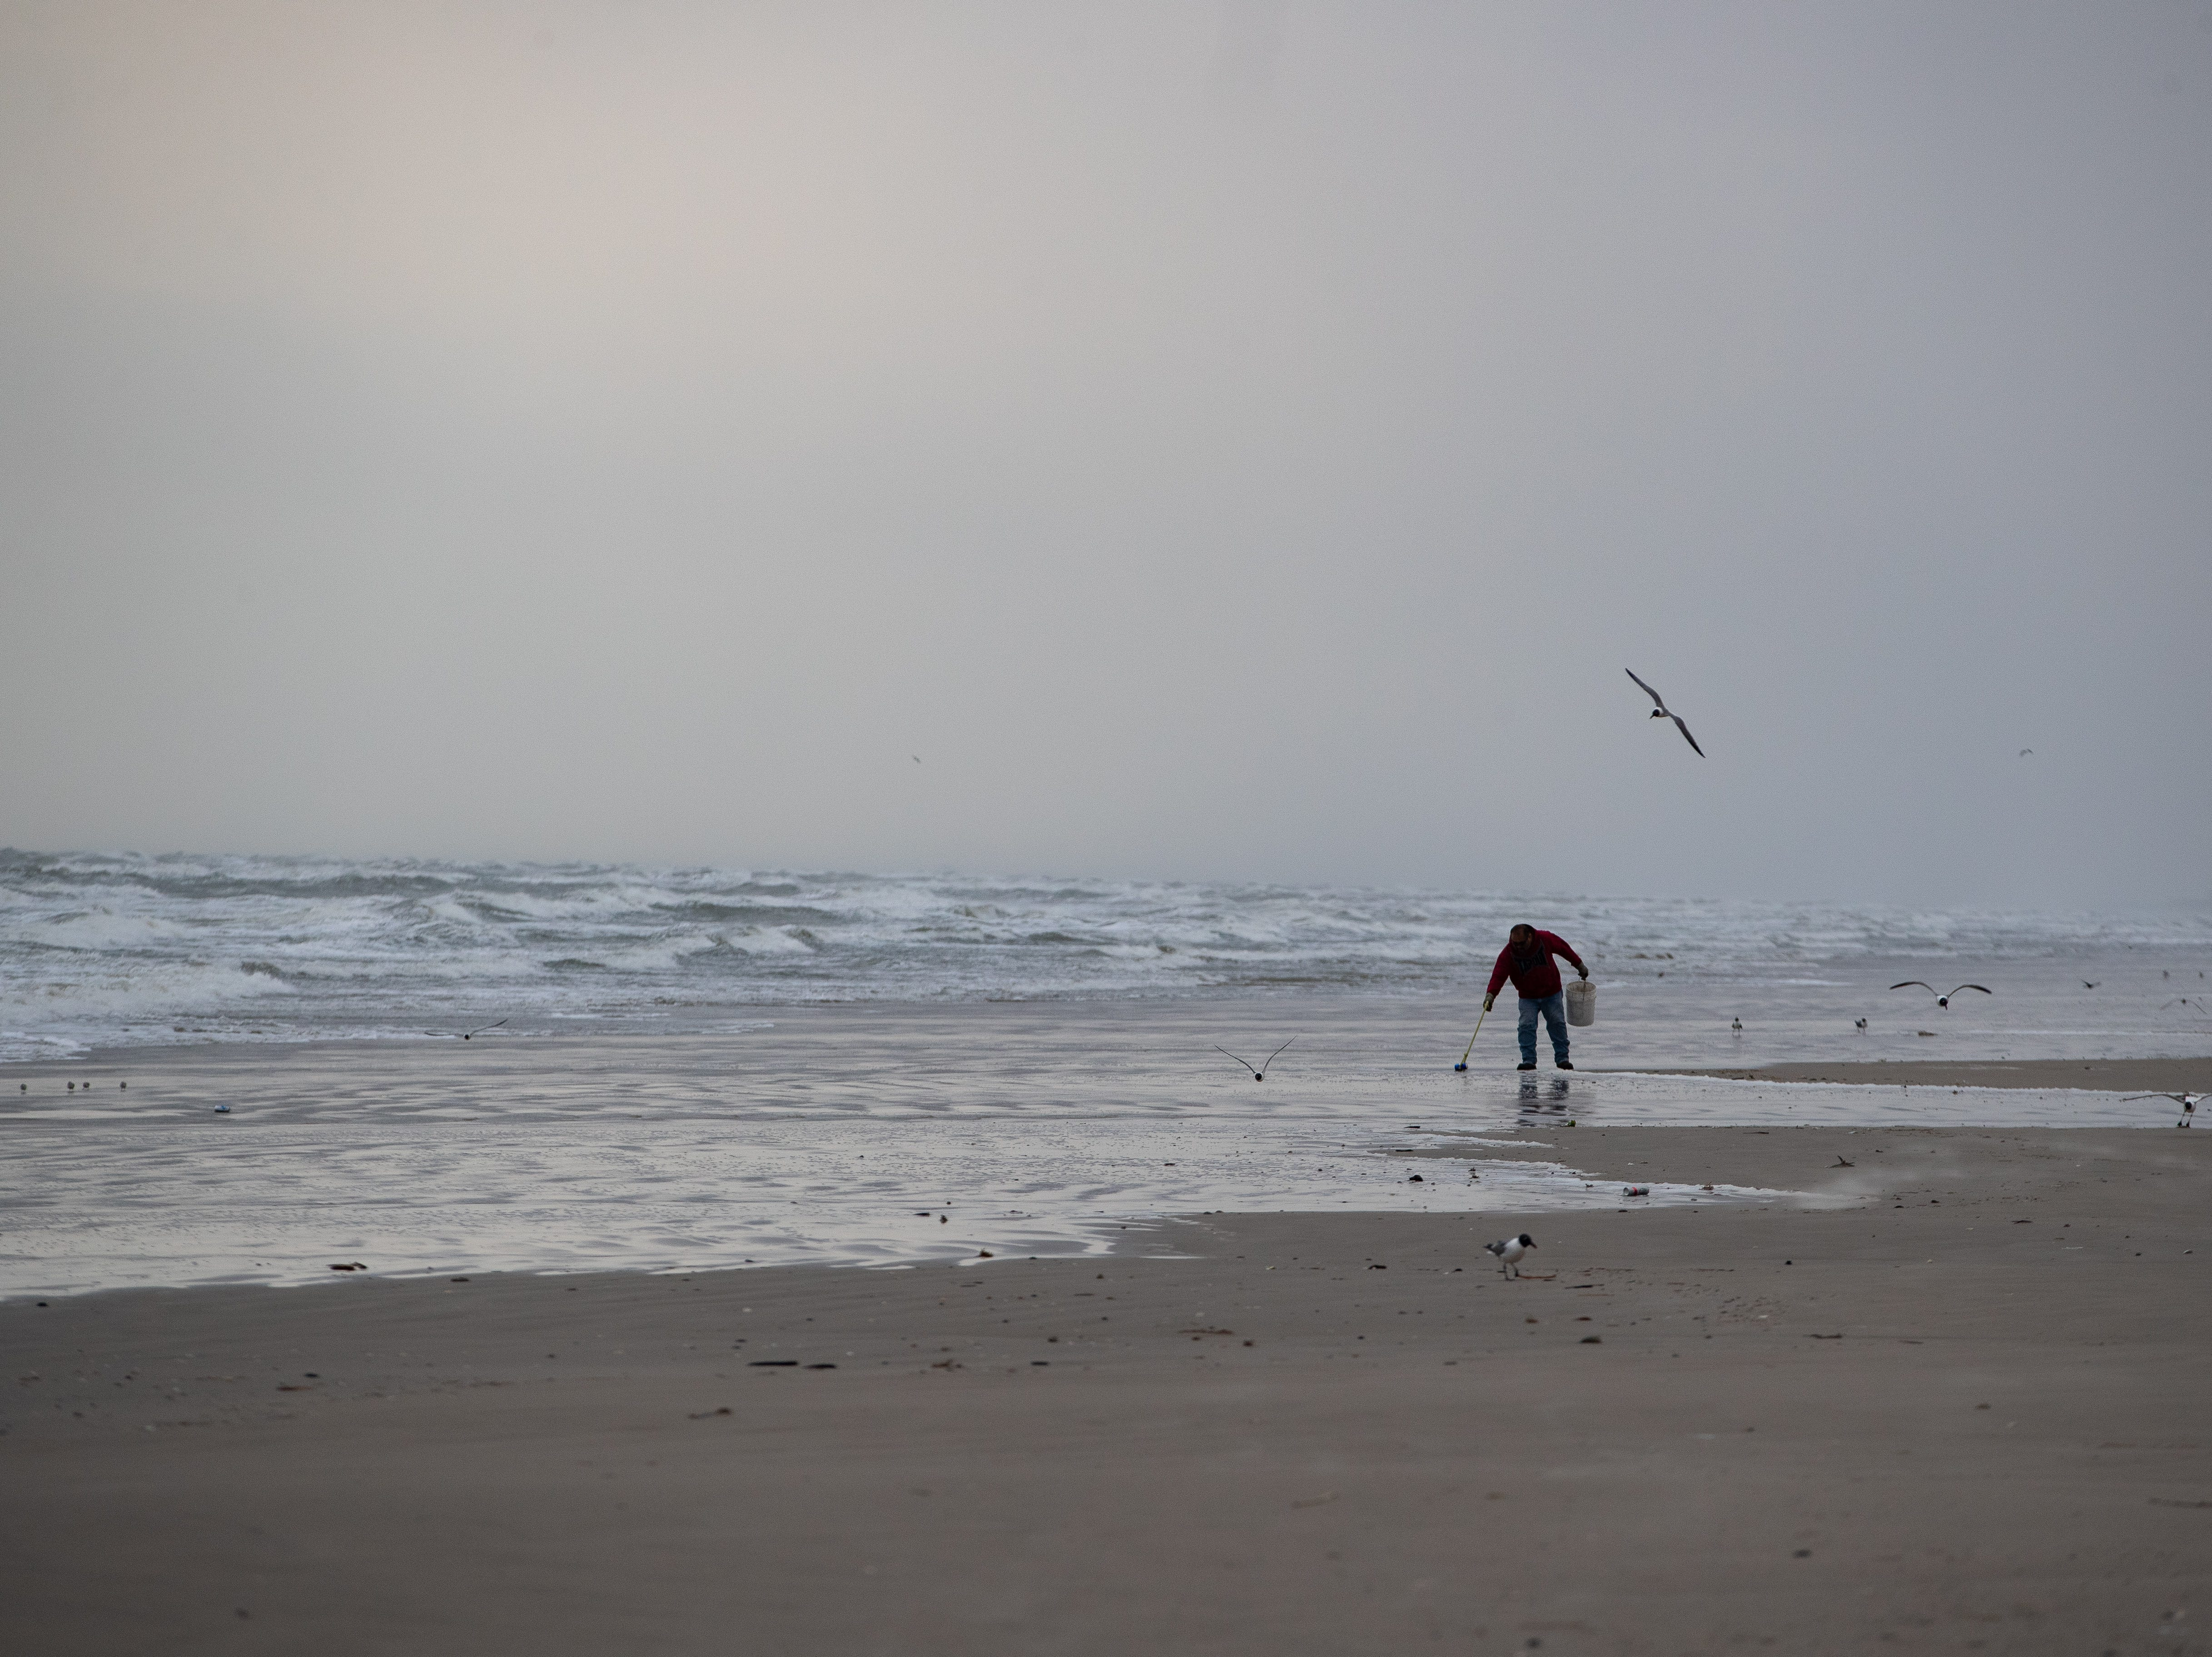 A Port Aransas sanitation worker walks the beach in the early morning collecting trash left behind from the day before during the week of spring break on Friday, March 15, 2019.